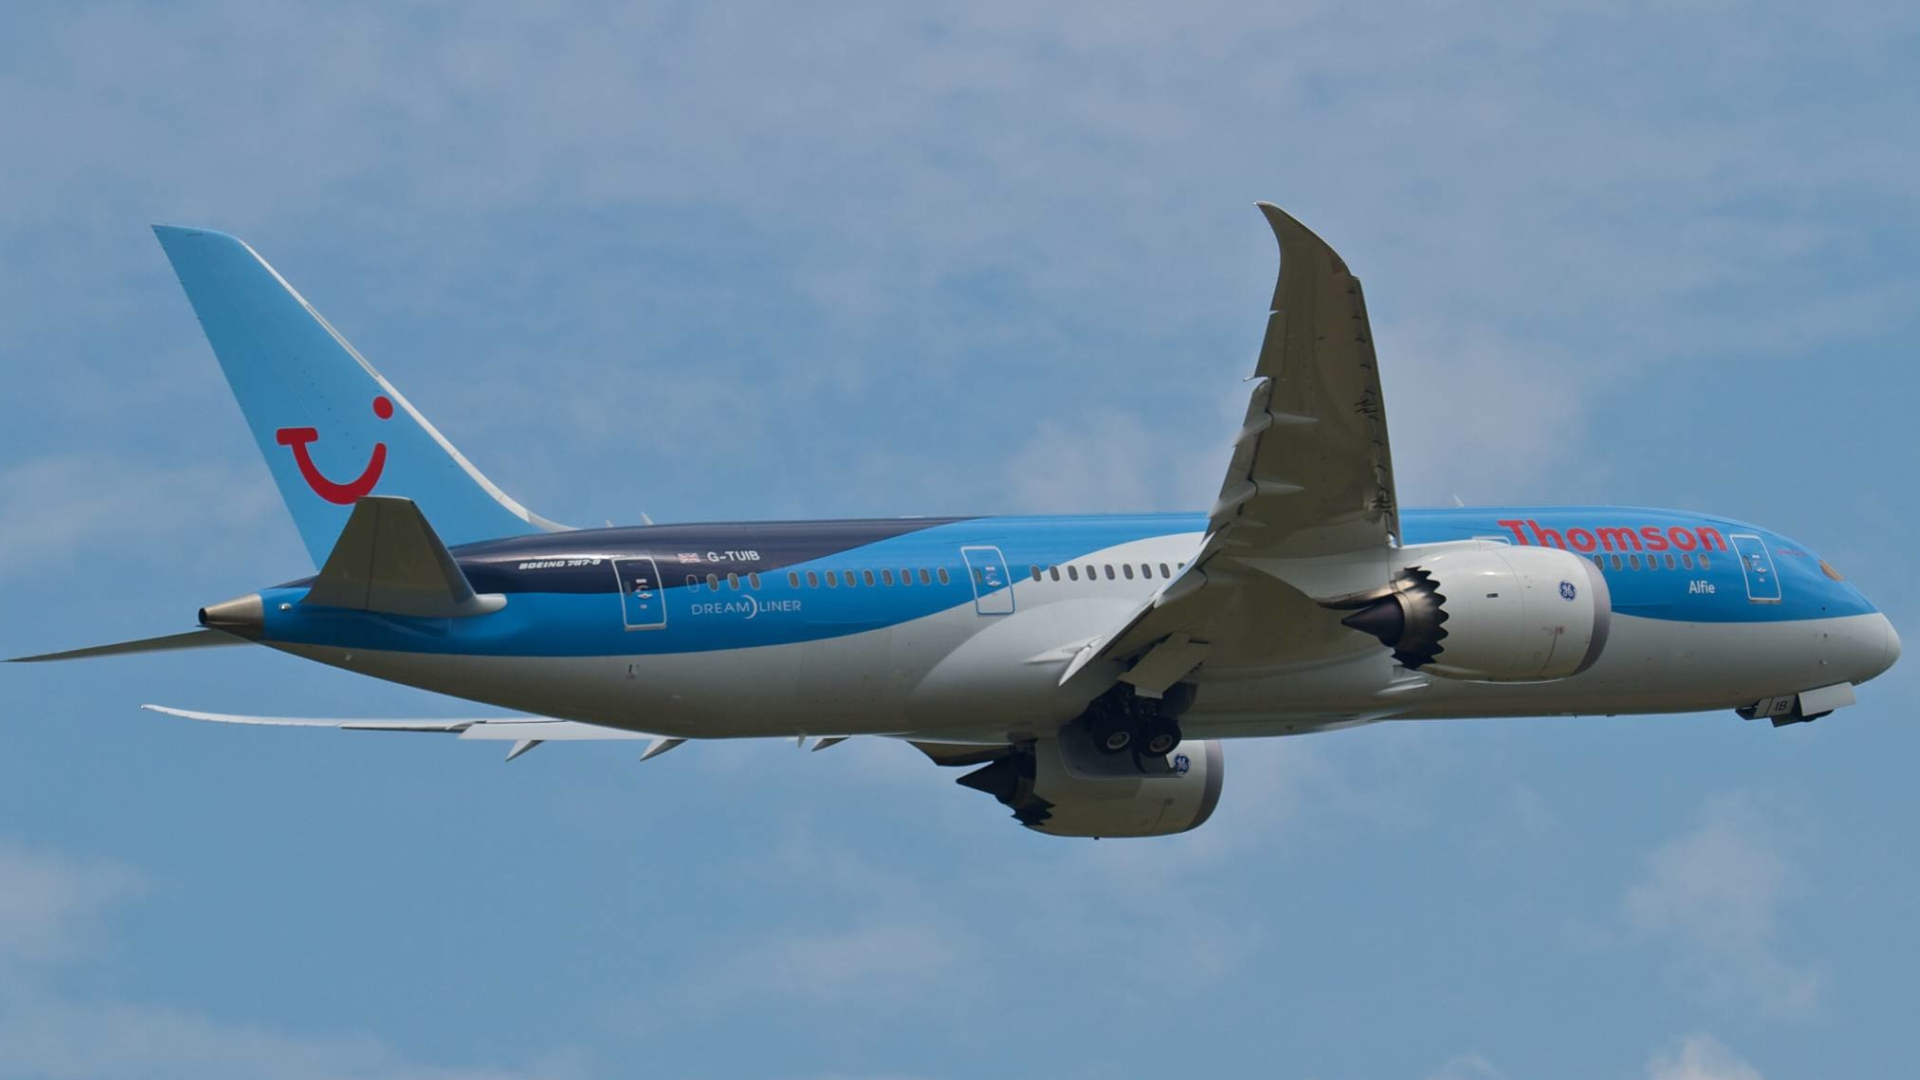 dreamliner wallpaper - photo #26